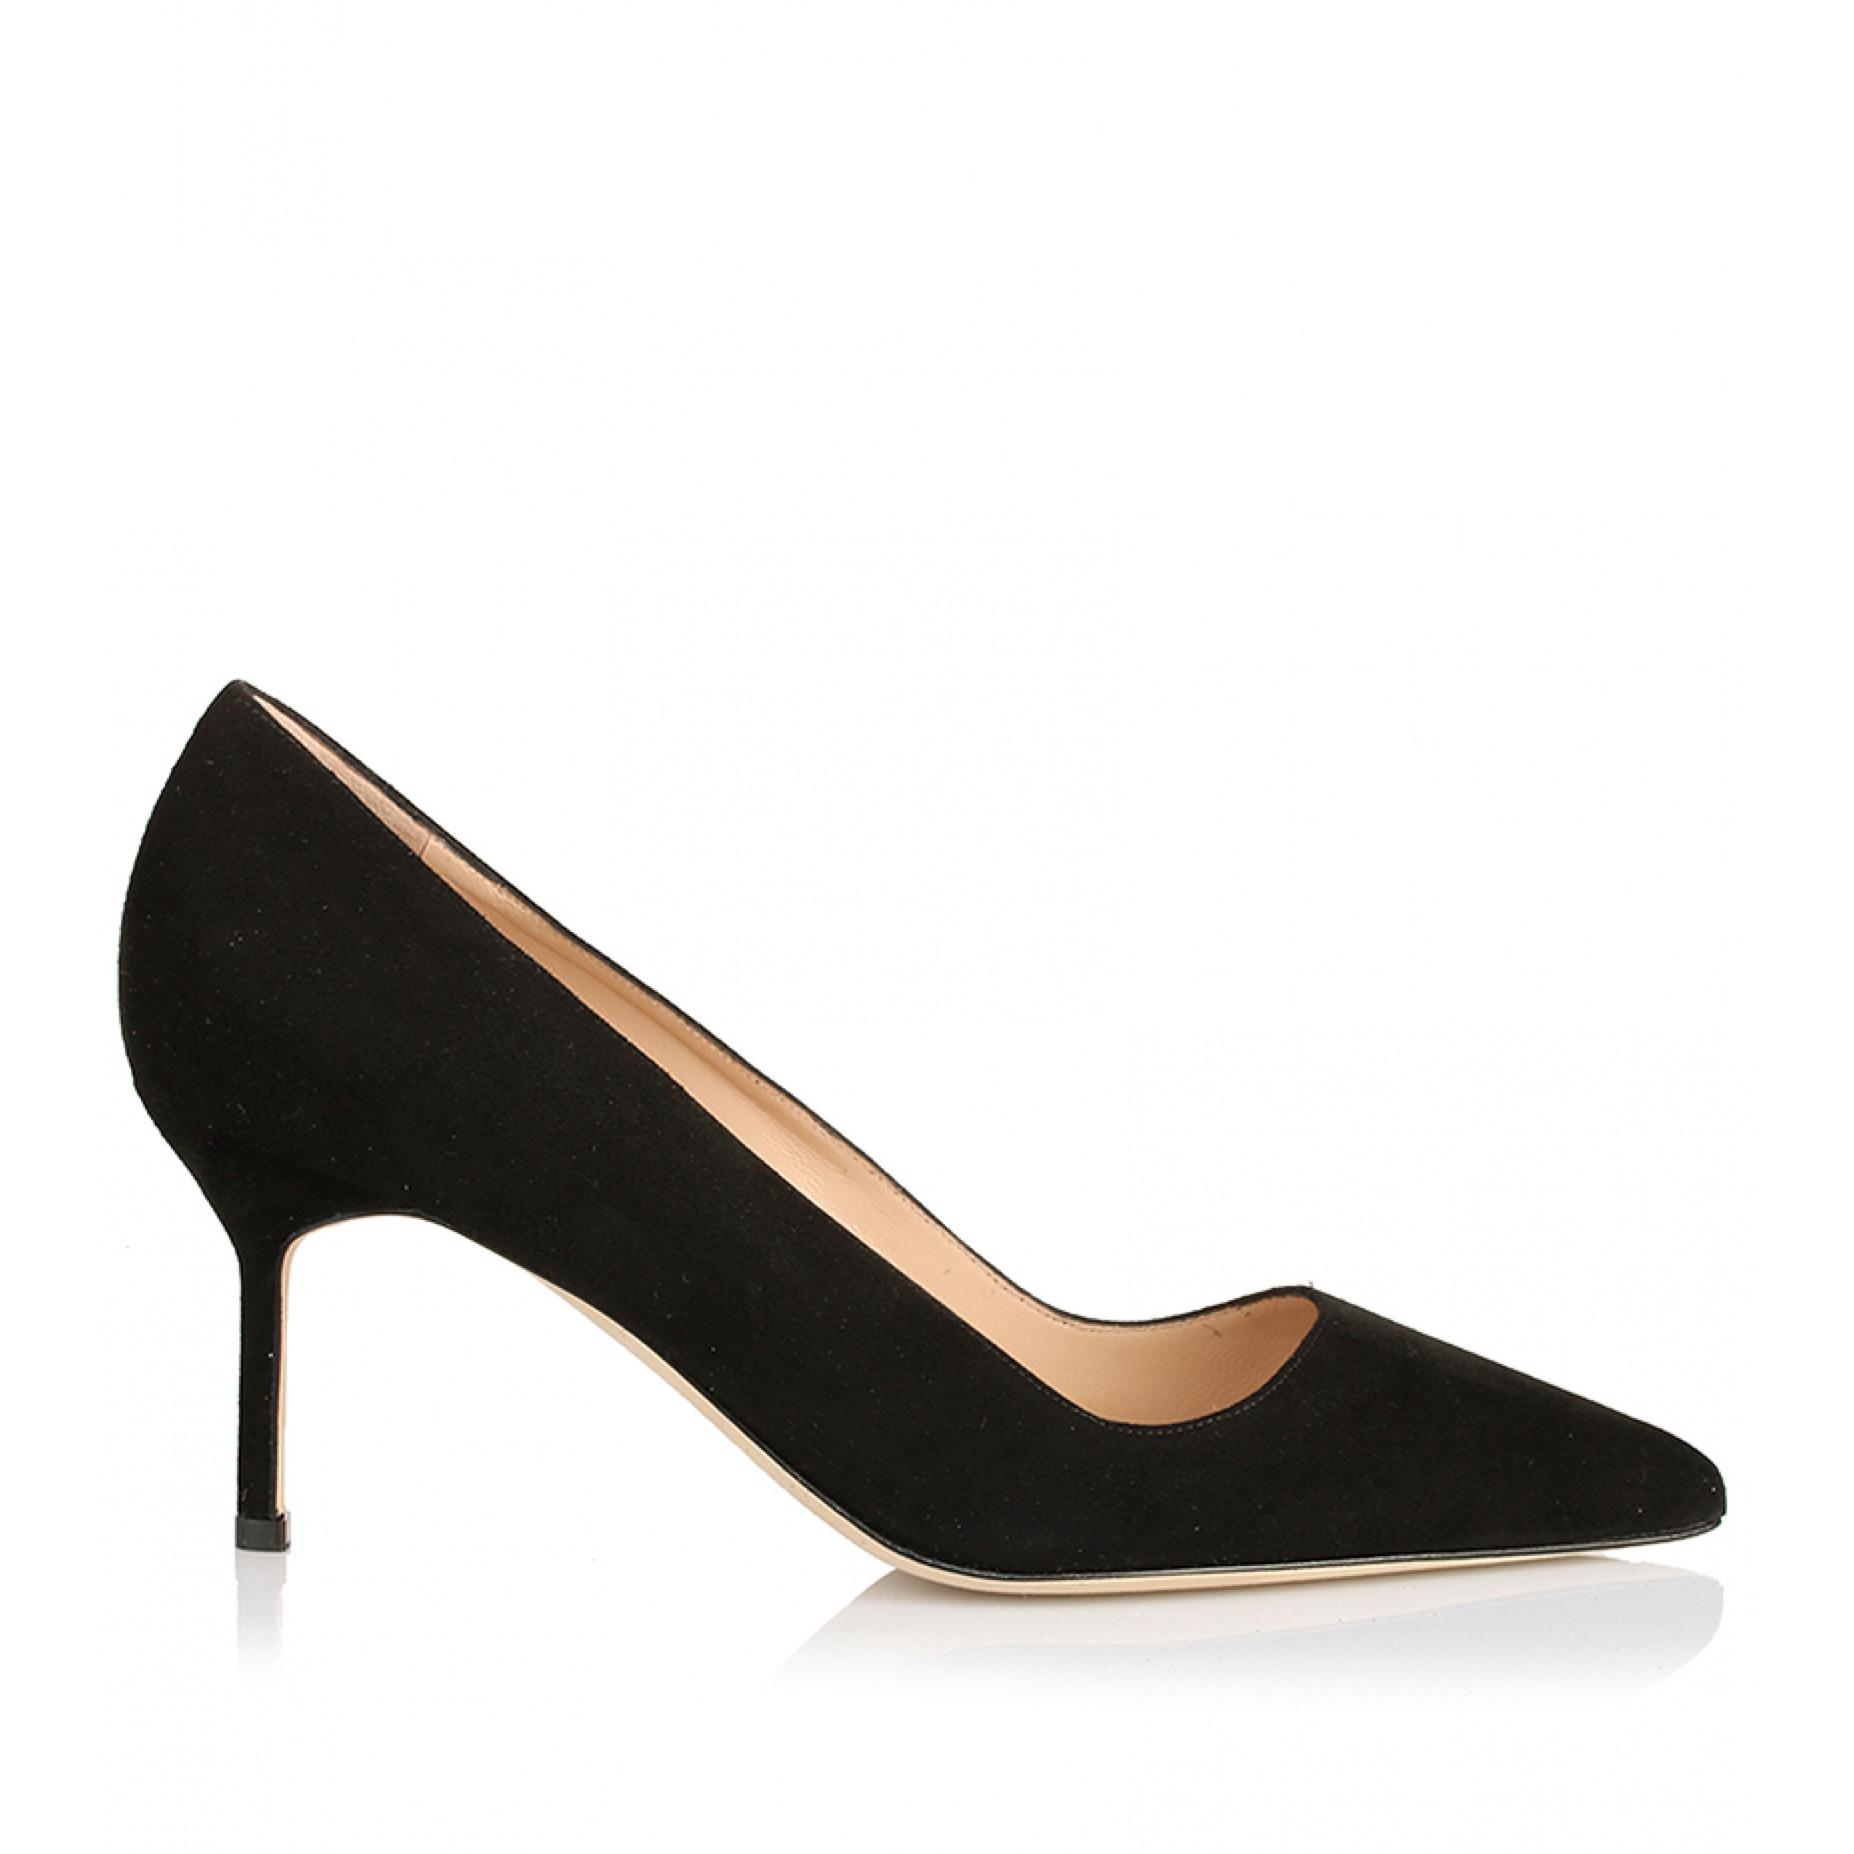 BB70 black velvet pump Manolo Blahnik